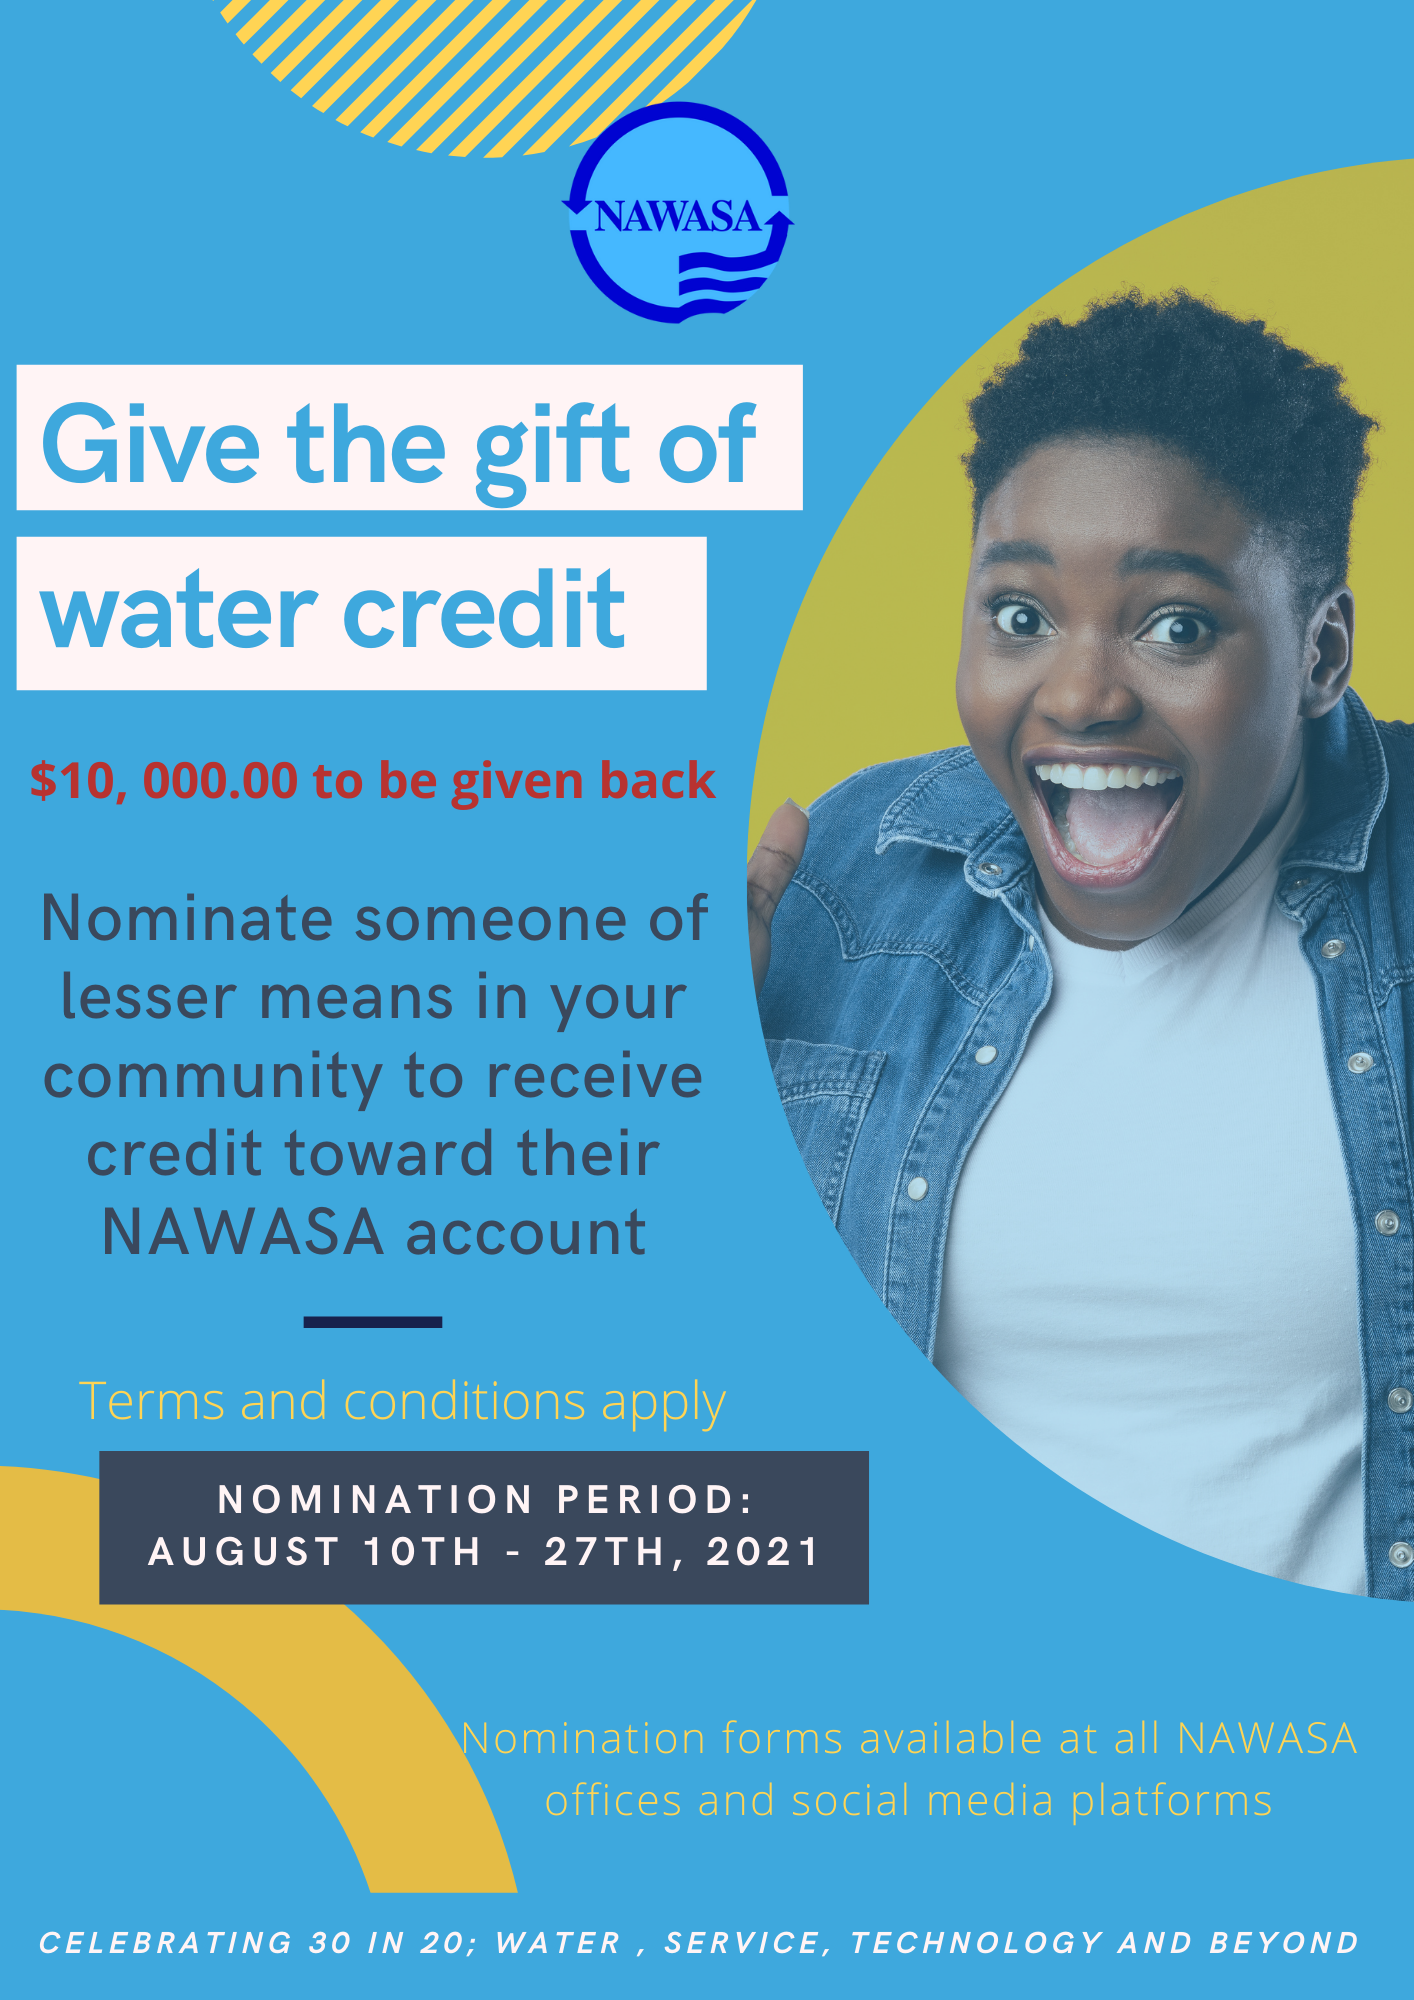 Give the gift of water credit